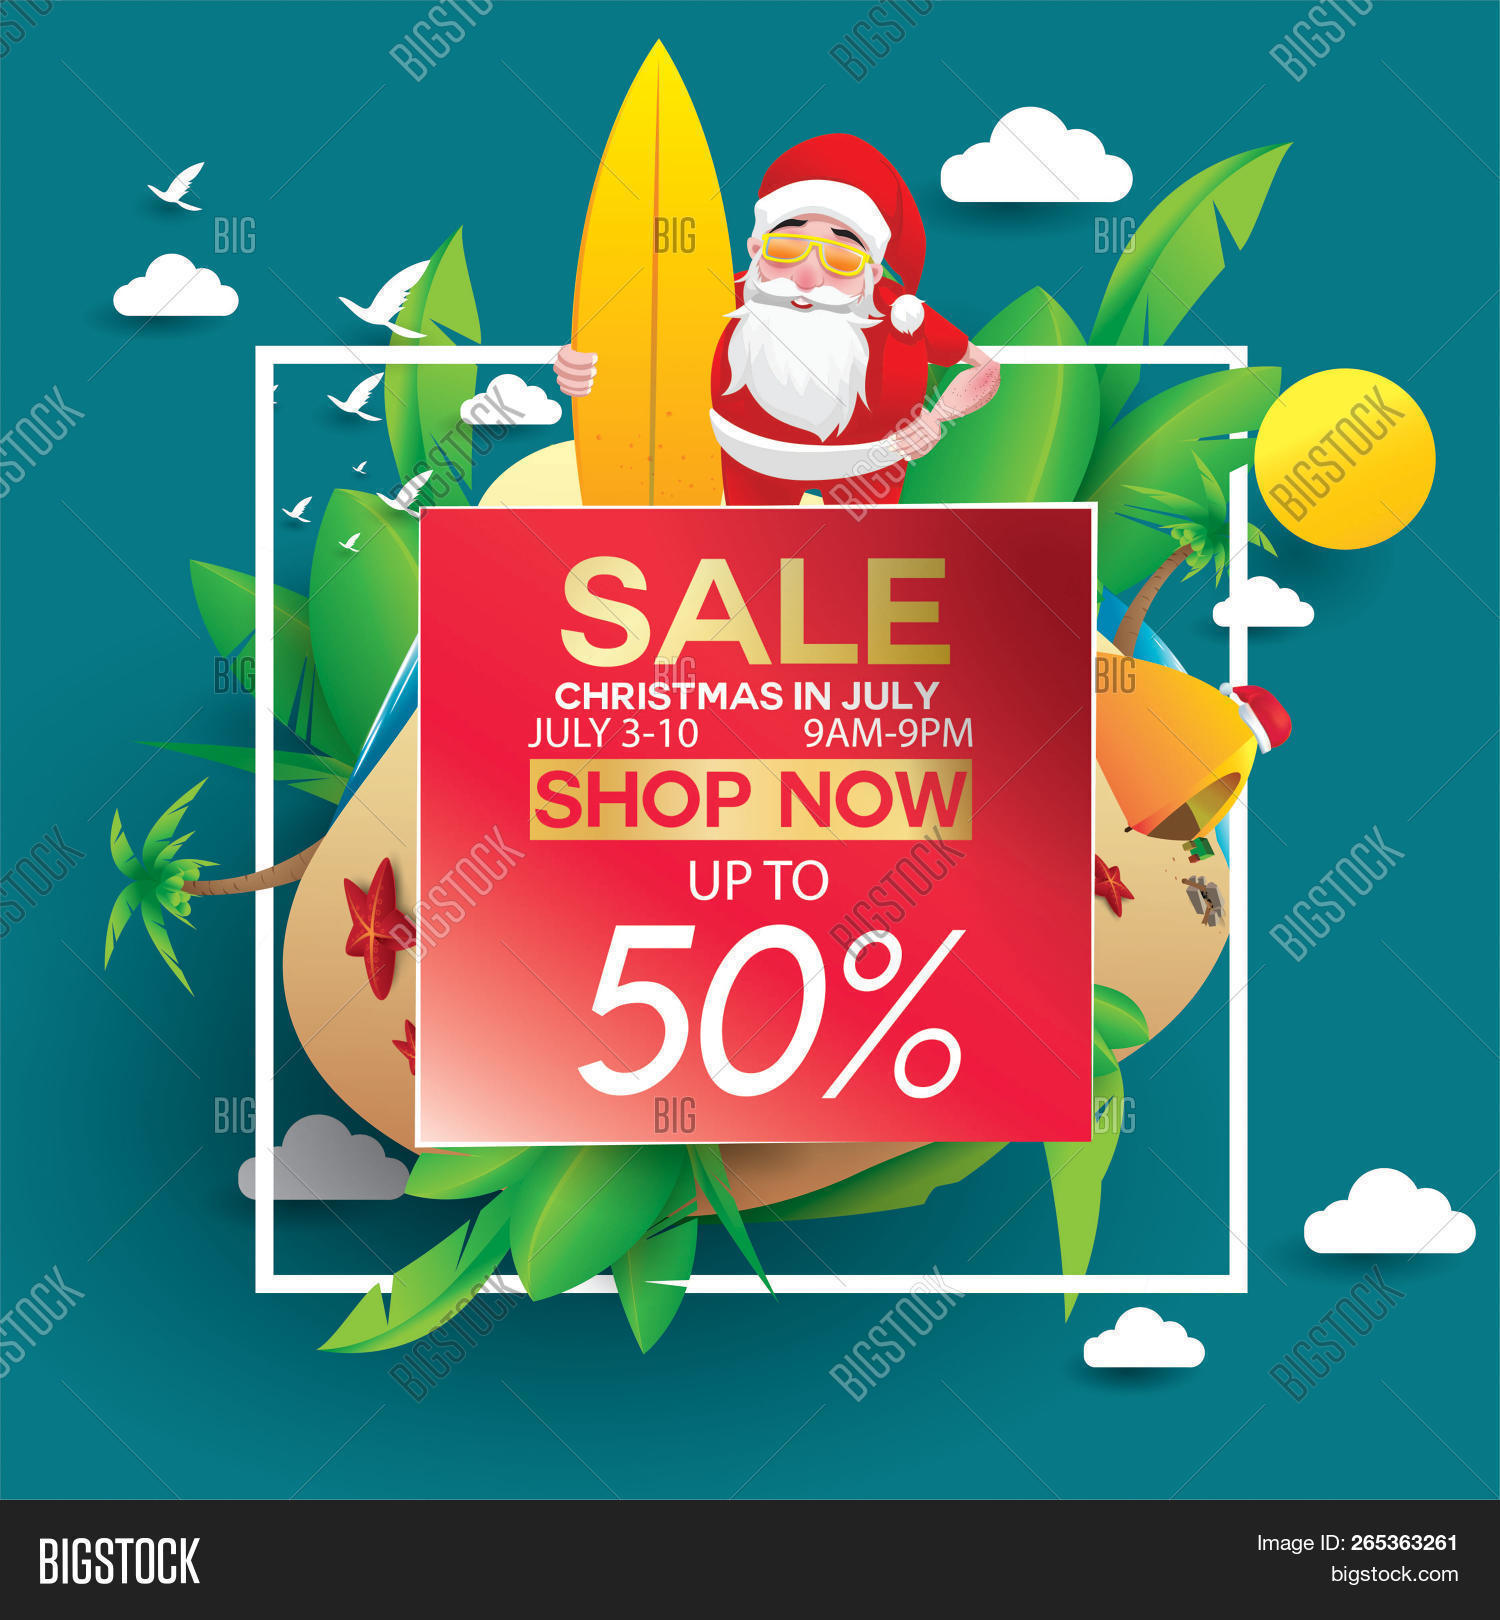 Christmas In August Poster.Christmas July Design Image Photo Free Trial Bigstock